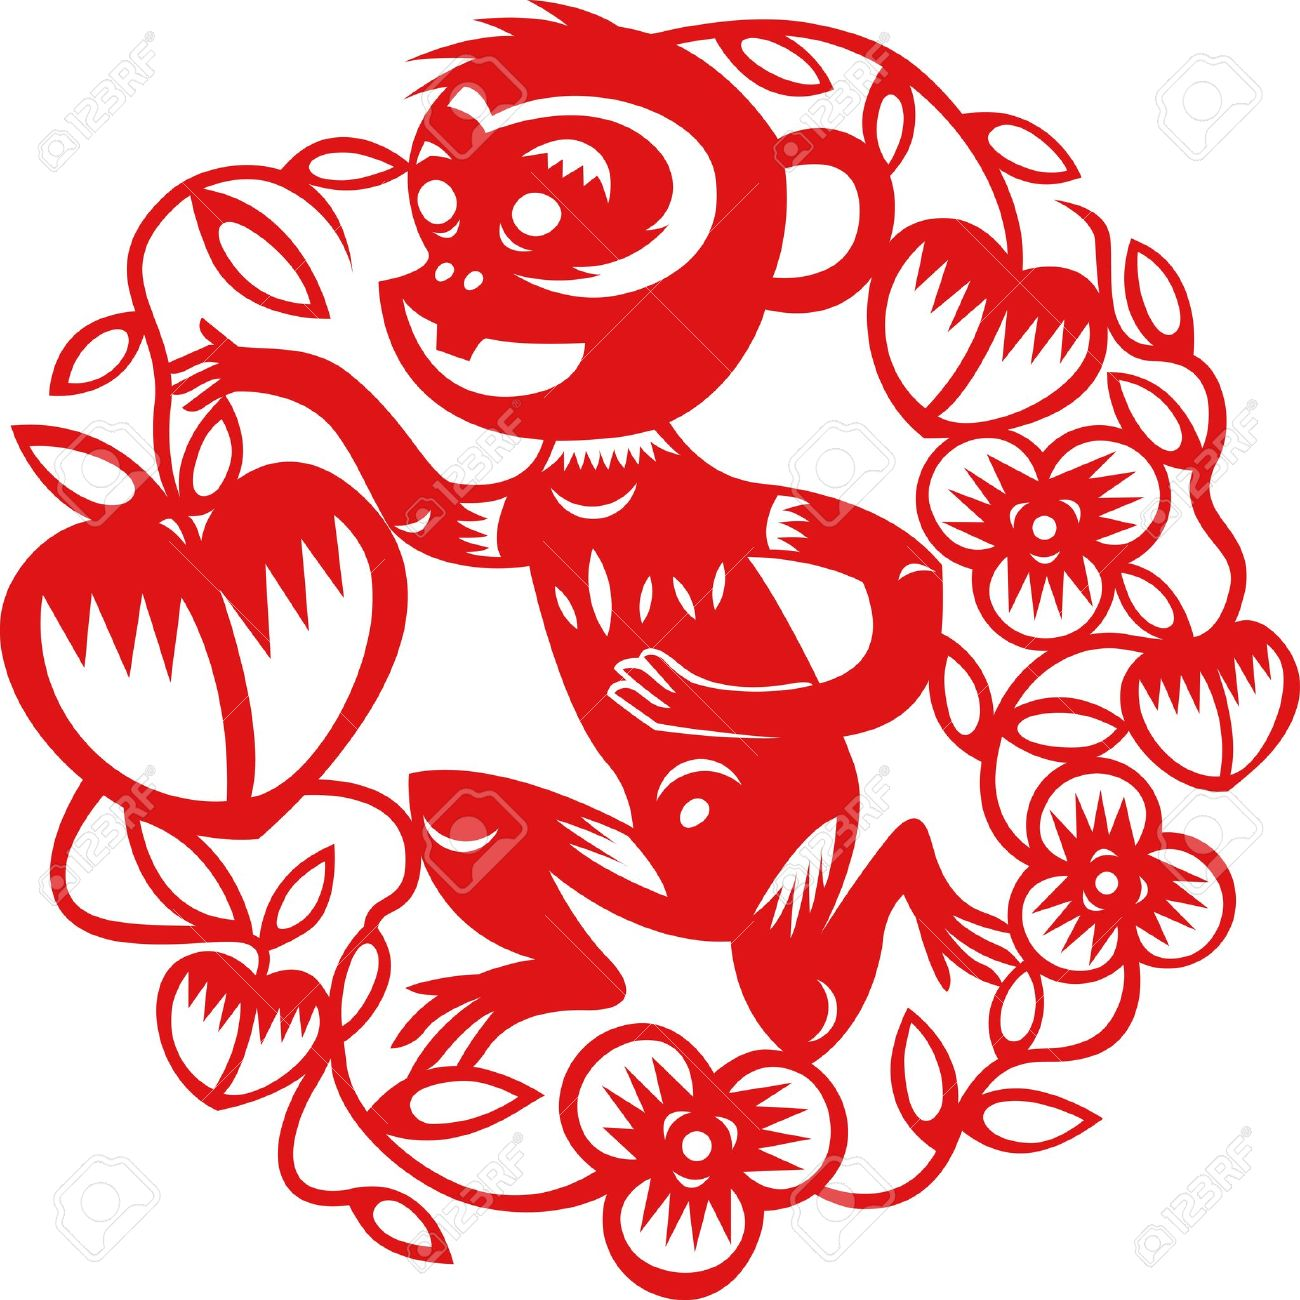 Monkey clipart icon new year royalty free Chinese monkey new year clipart - ClipartFox royalty free